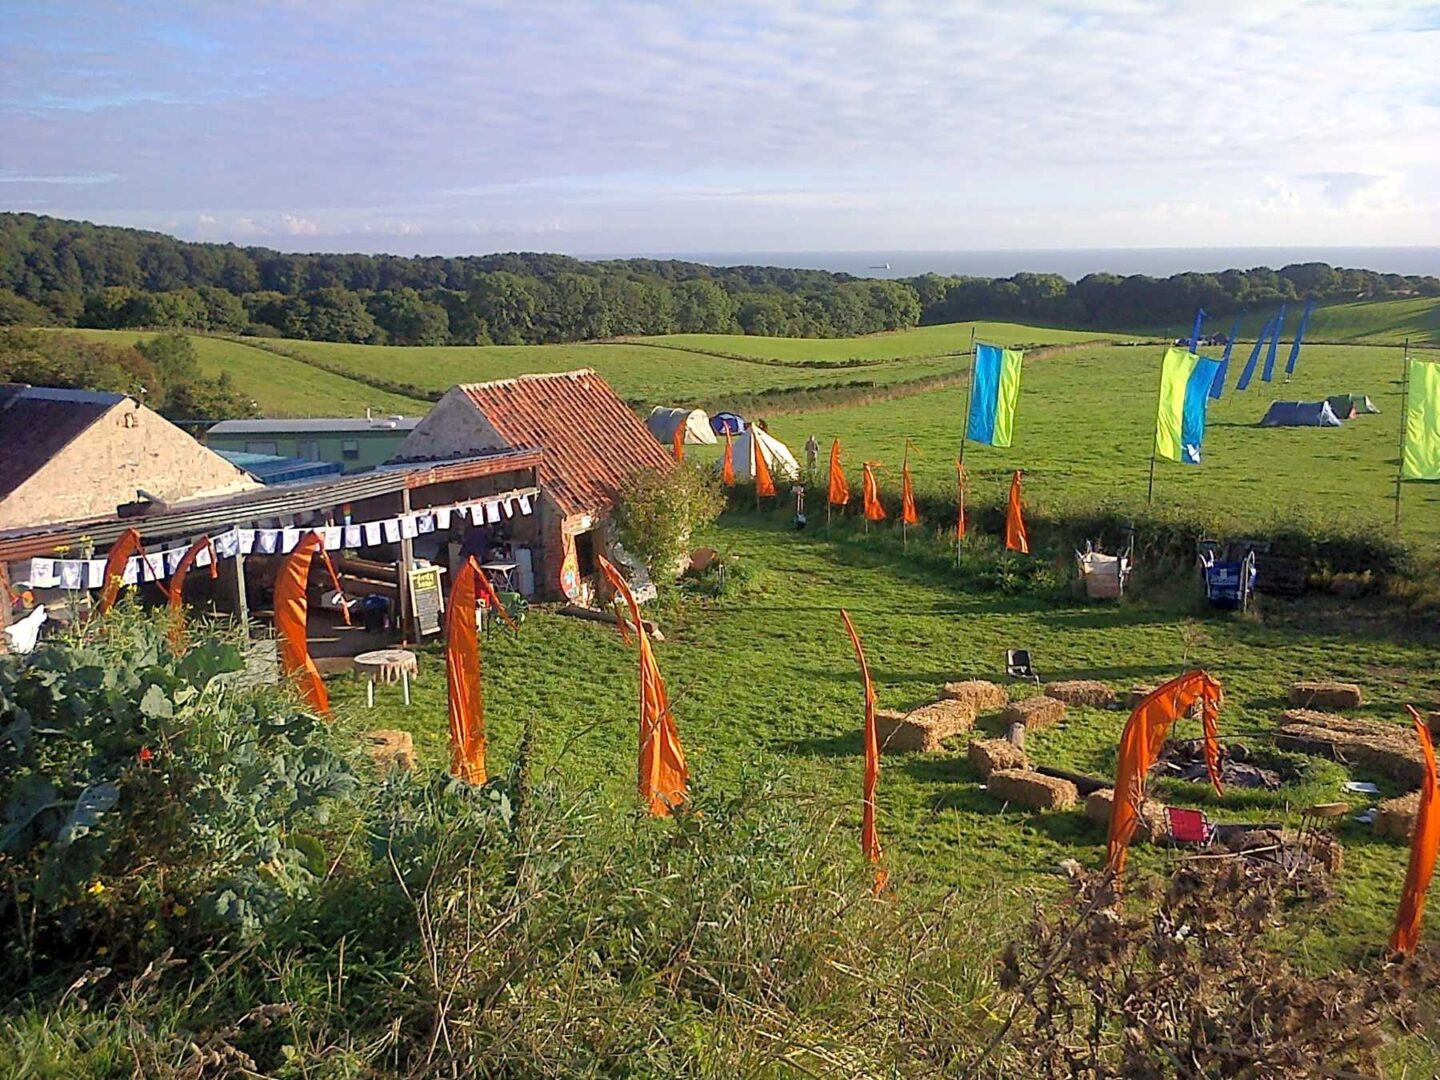 A farm and campsite with colourful flags overlooking the sea.